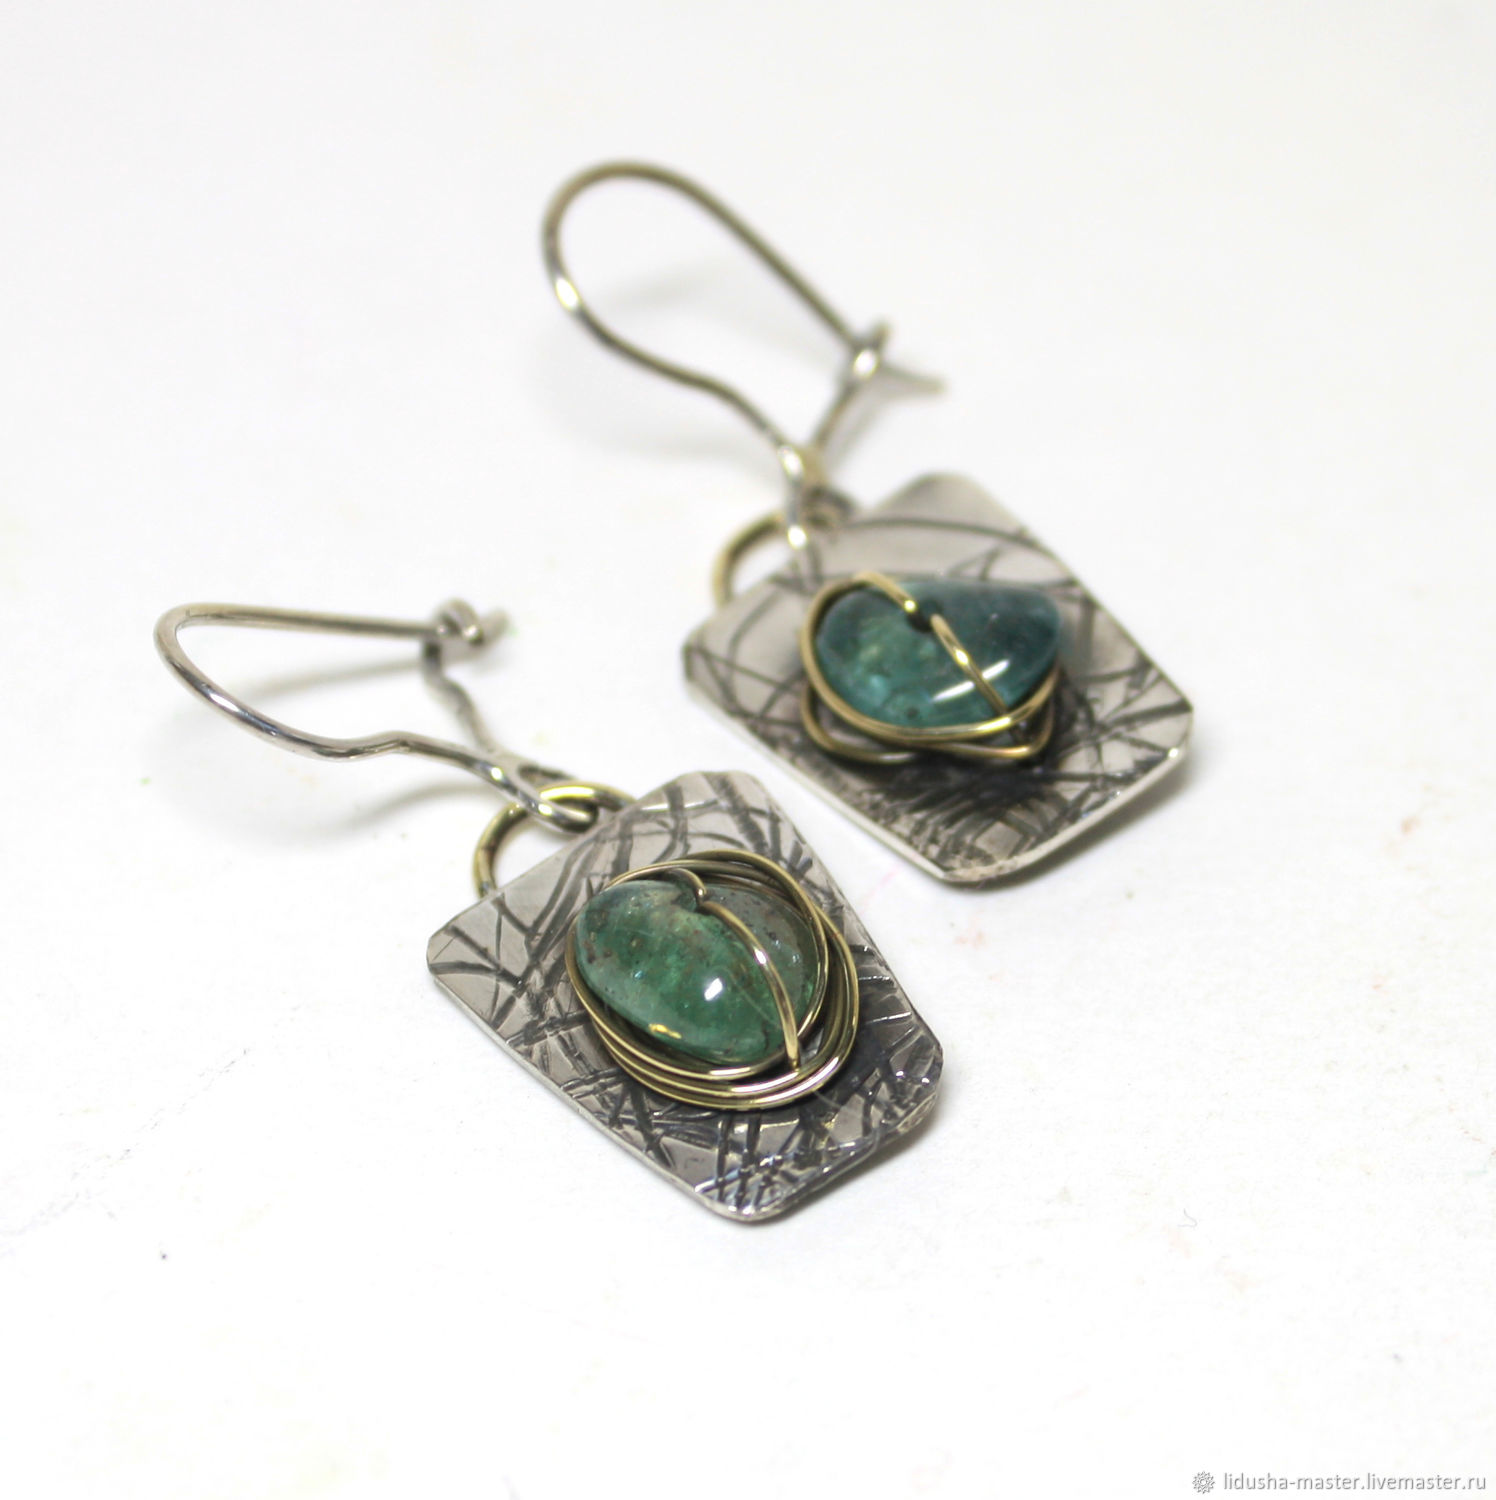 Classic 'Medusa' earrings', Earrings, Nizhny Novgorod,  Фото №1